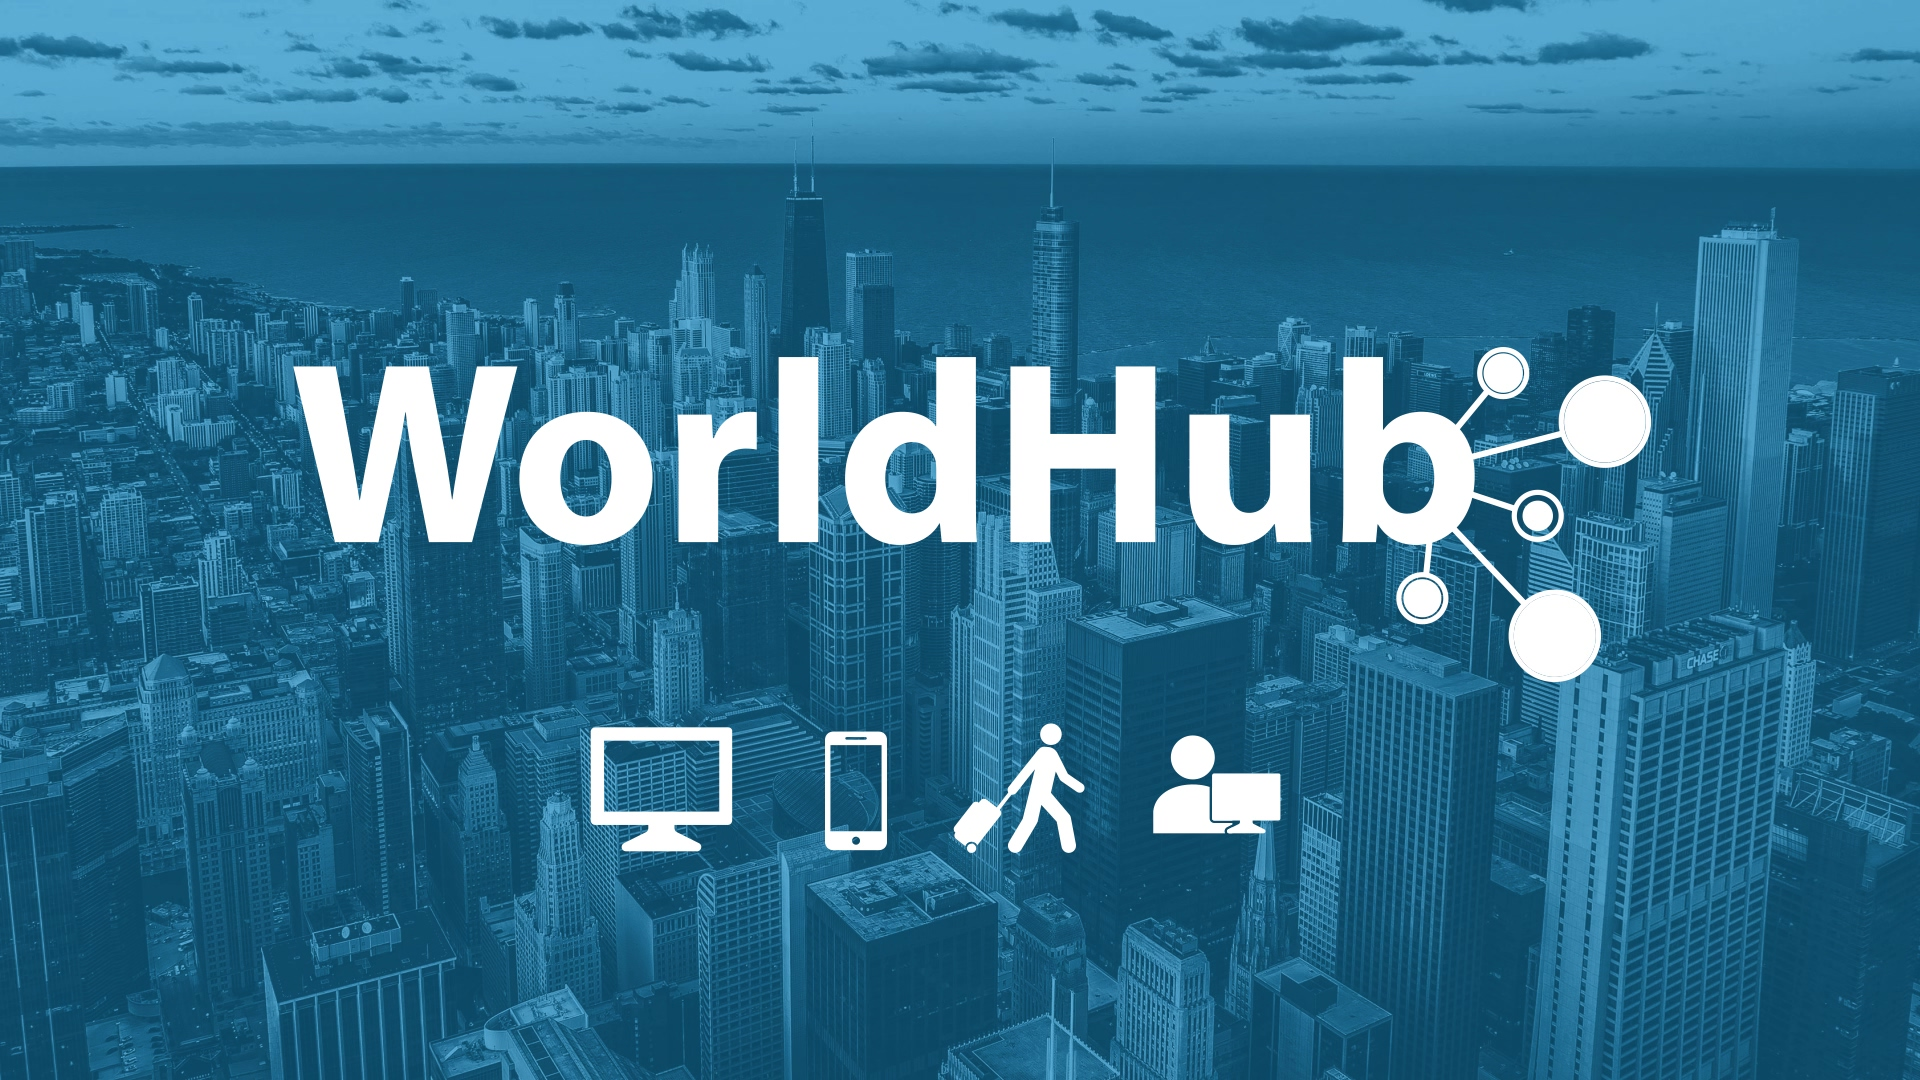 WorldHub Short Version v1-1